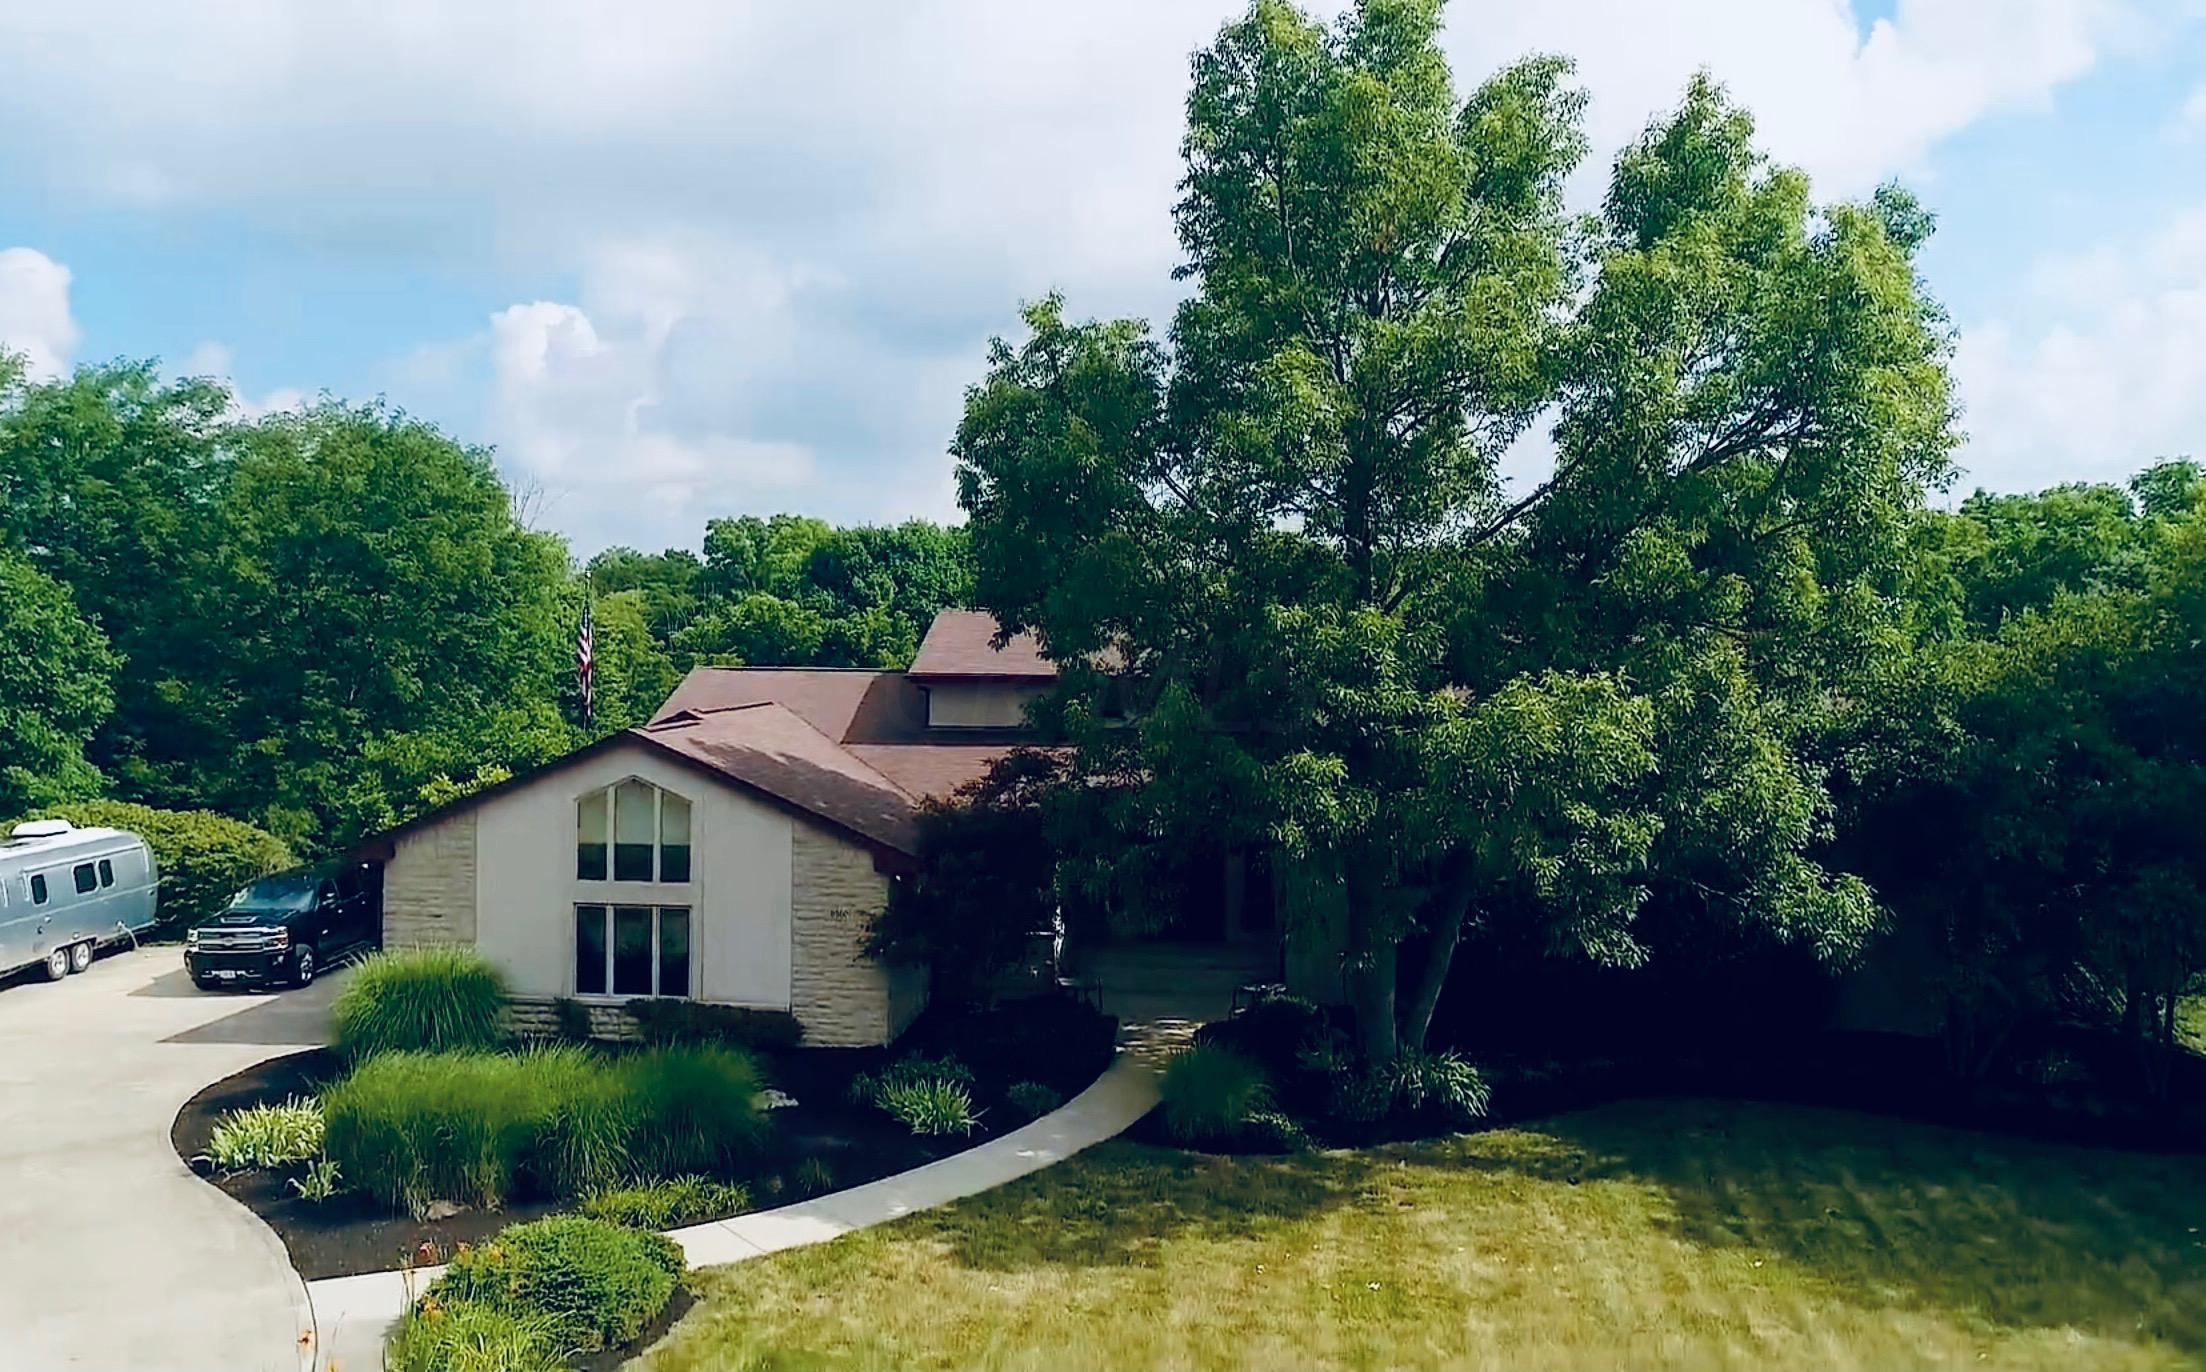 Property for sale at 8560 Glen View Drive, Plain City, Ohio 43064